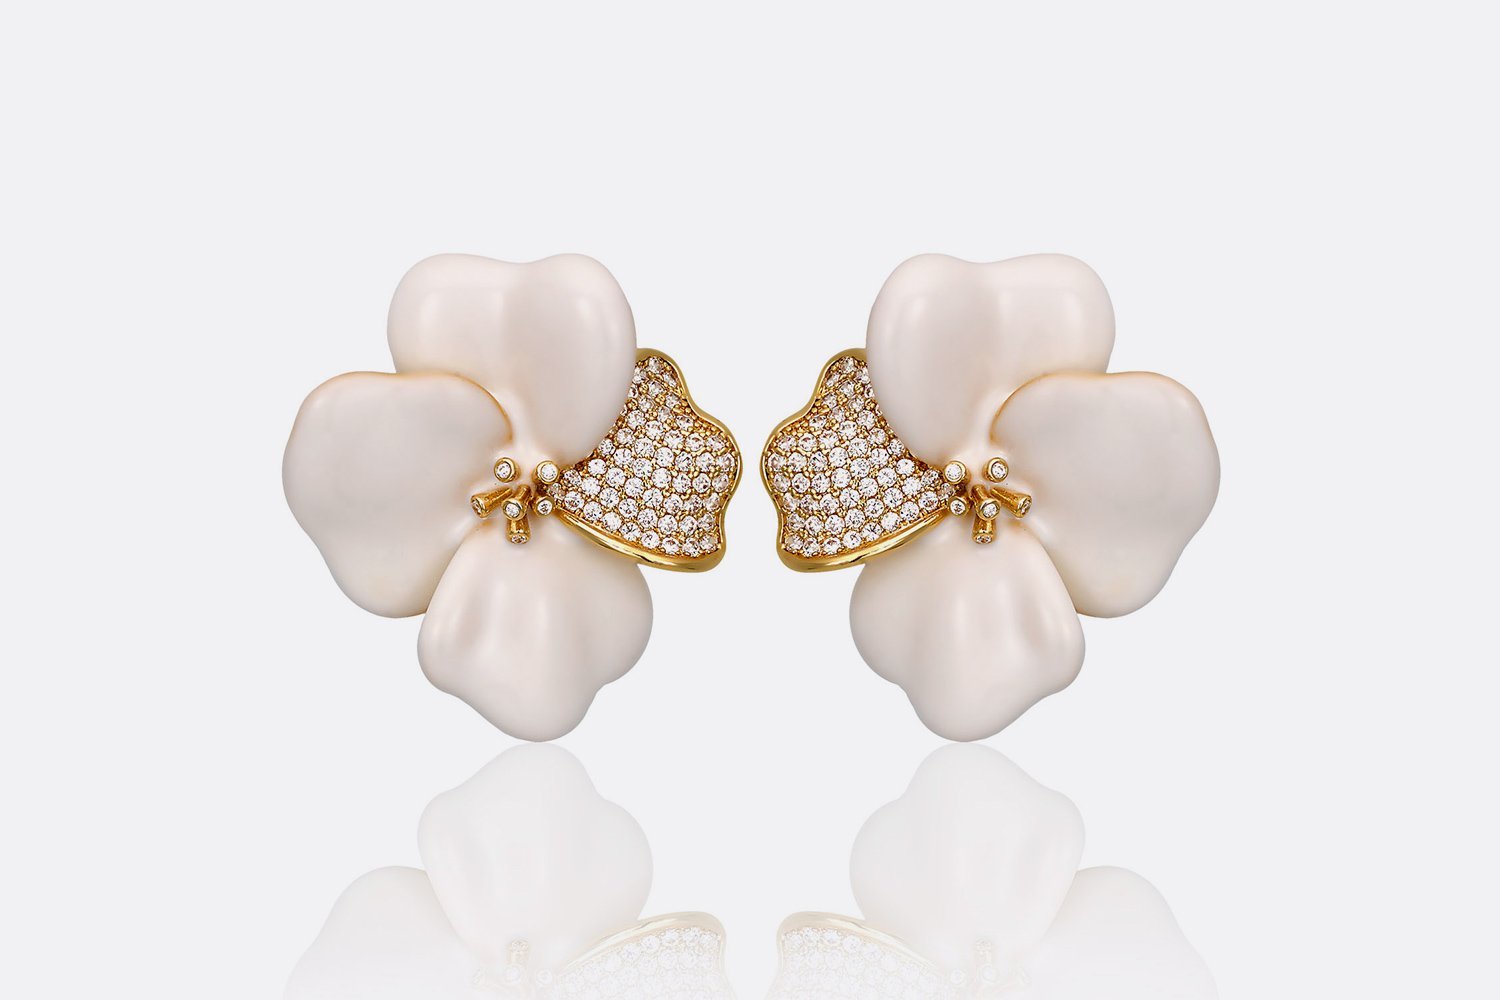 White Begonia Flower Earrings Ozar Jewels